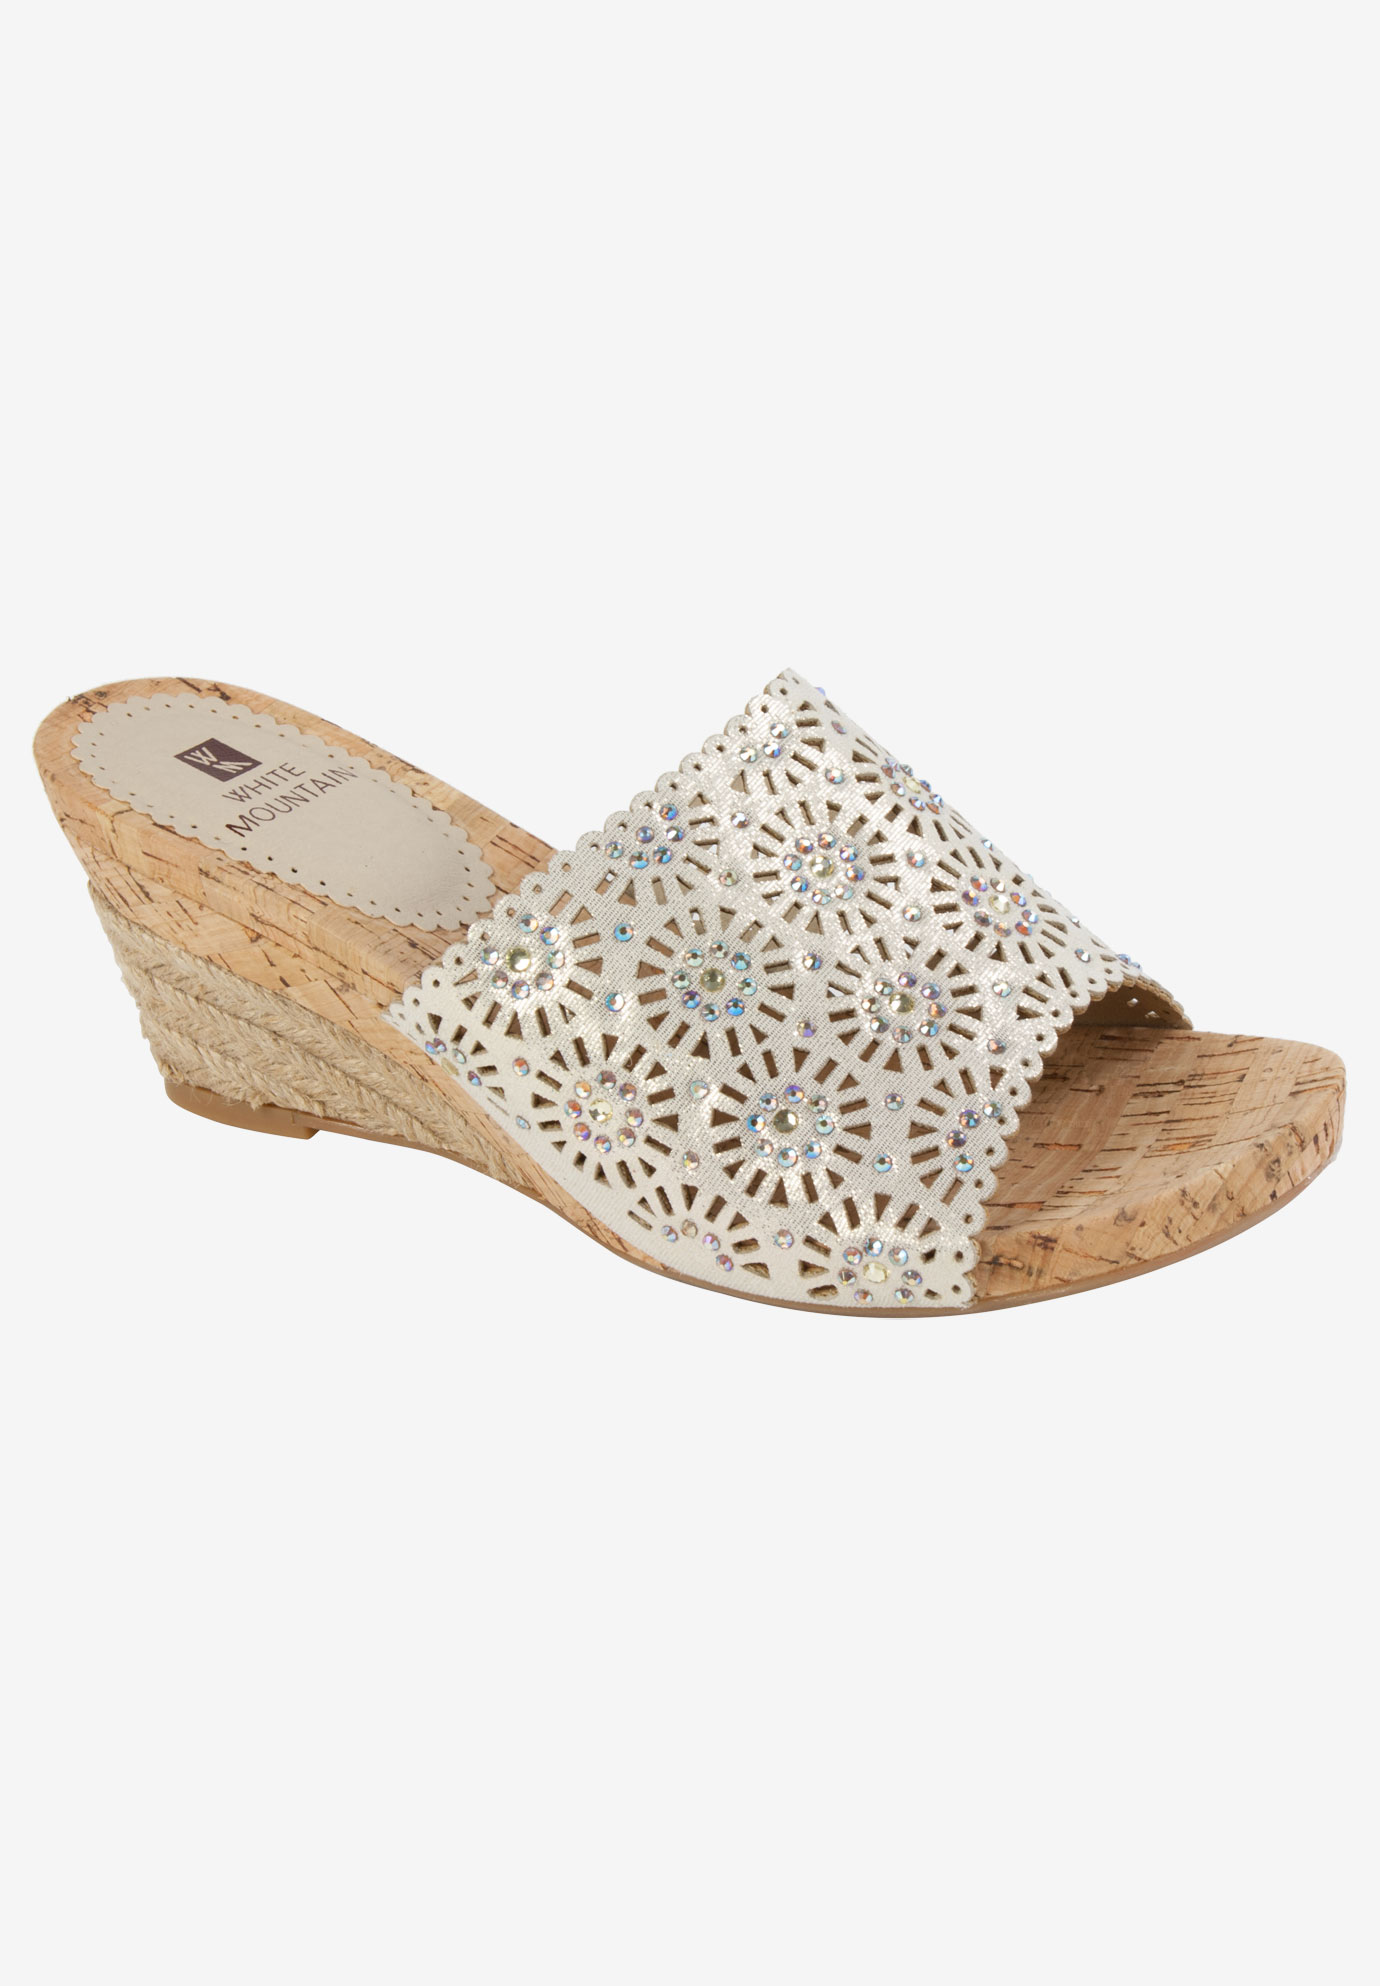 Adira Sandal by White Mountain,